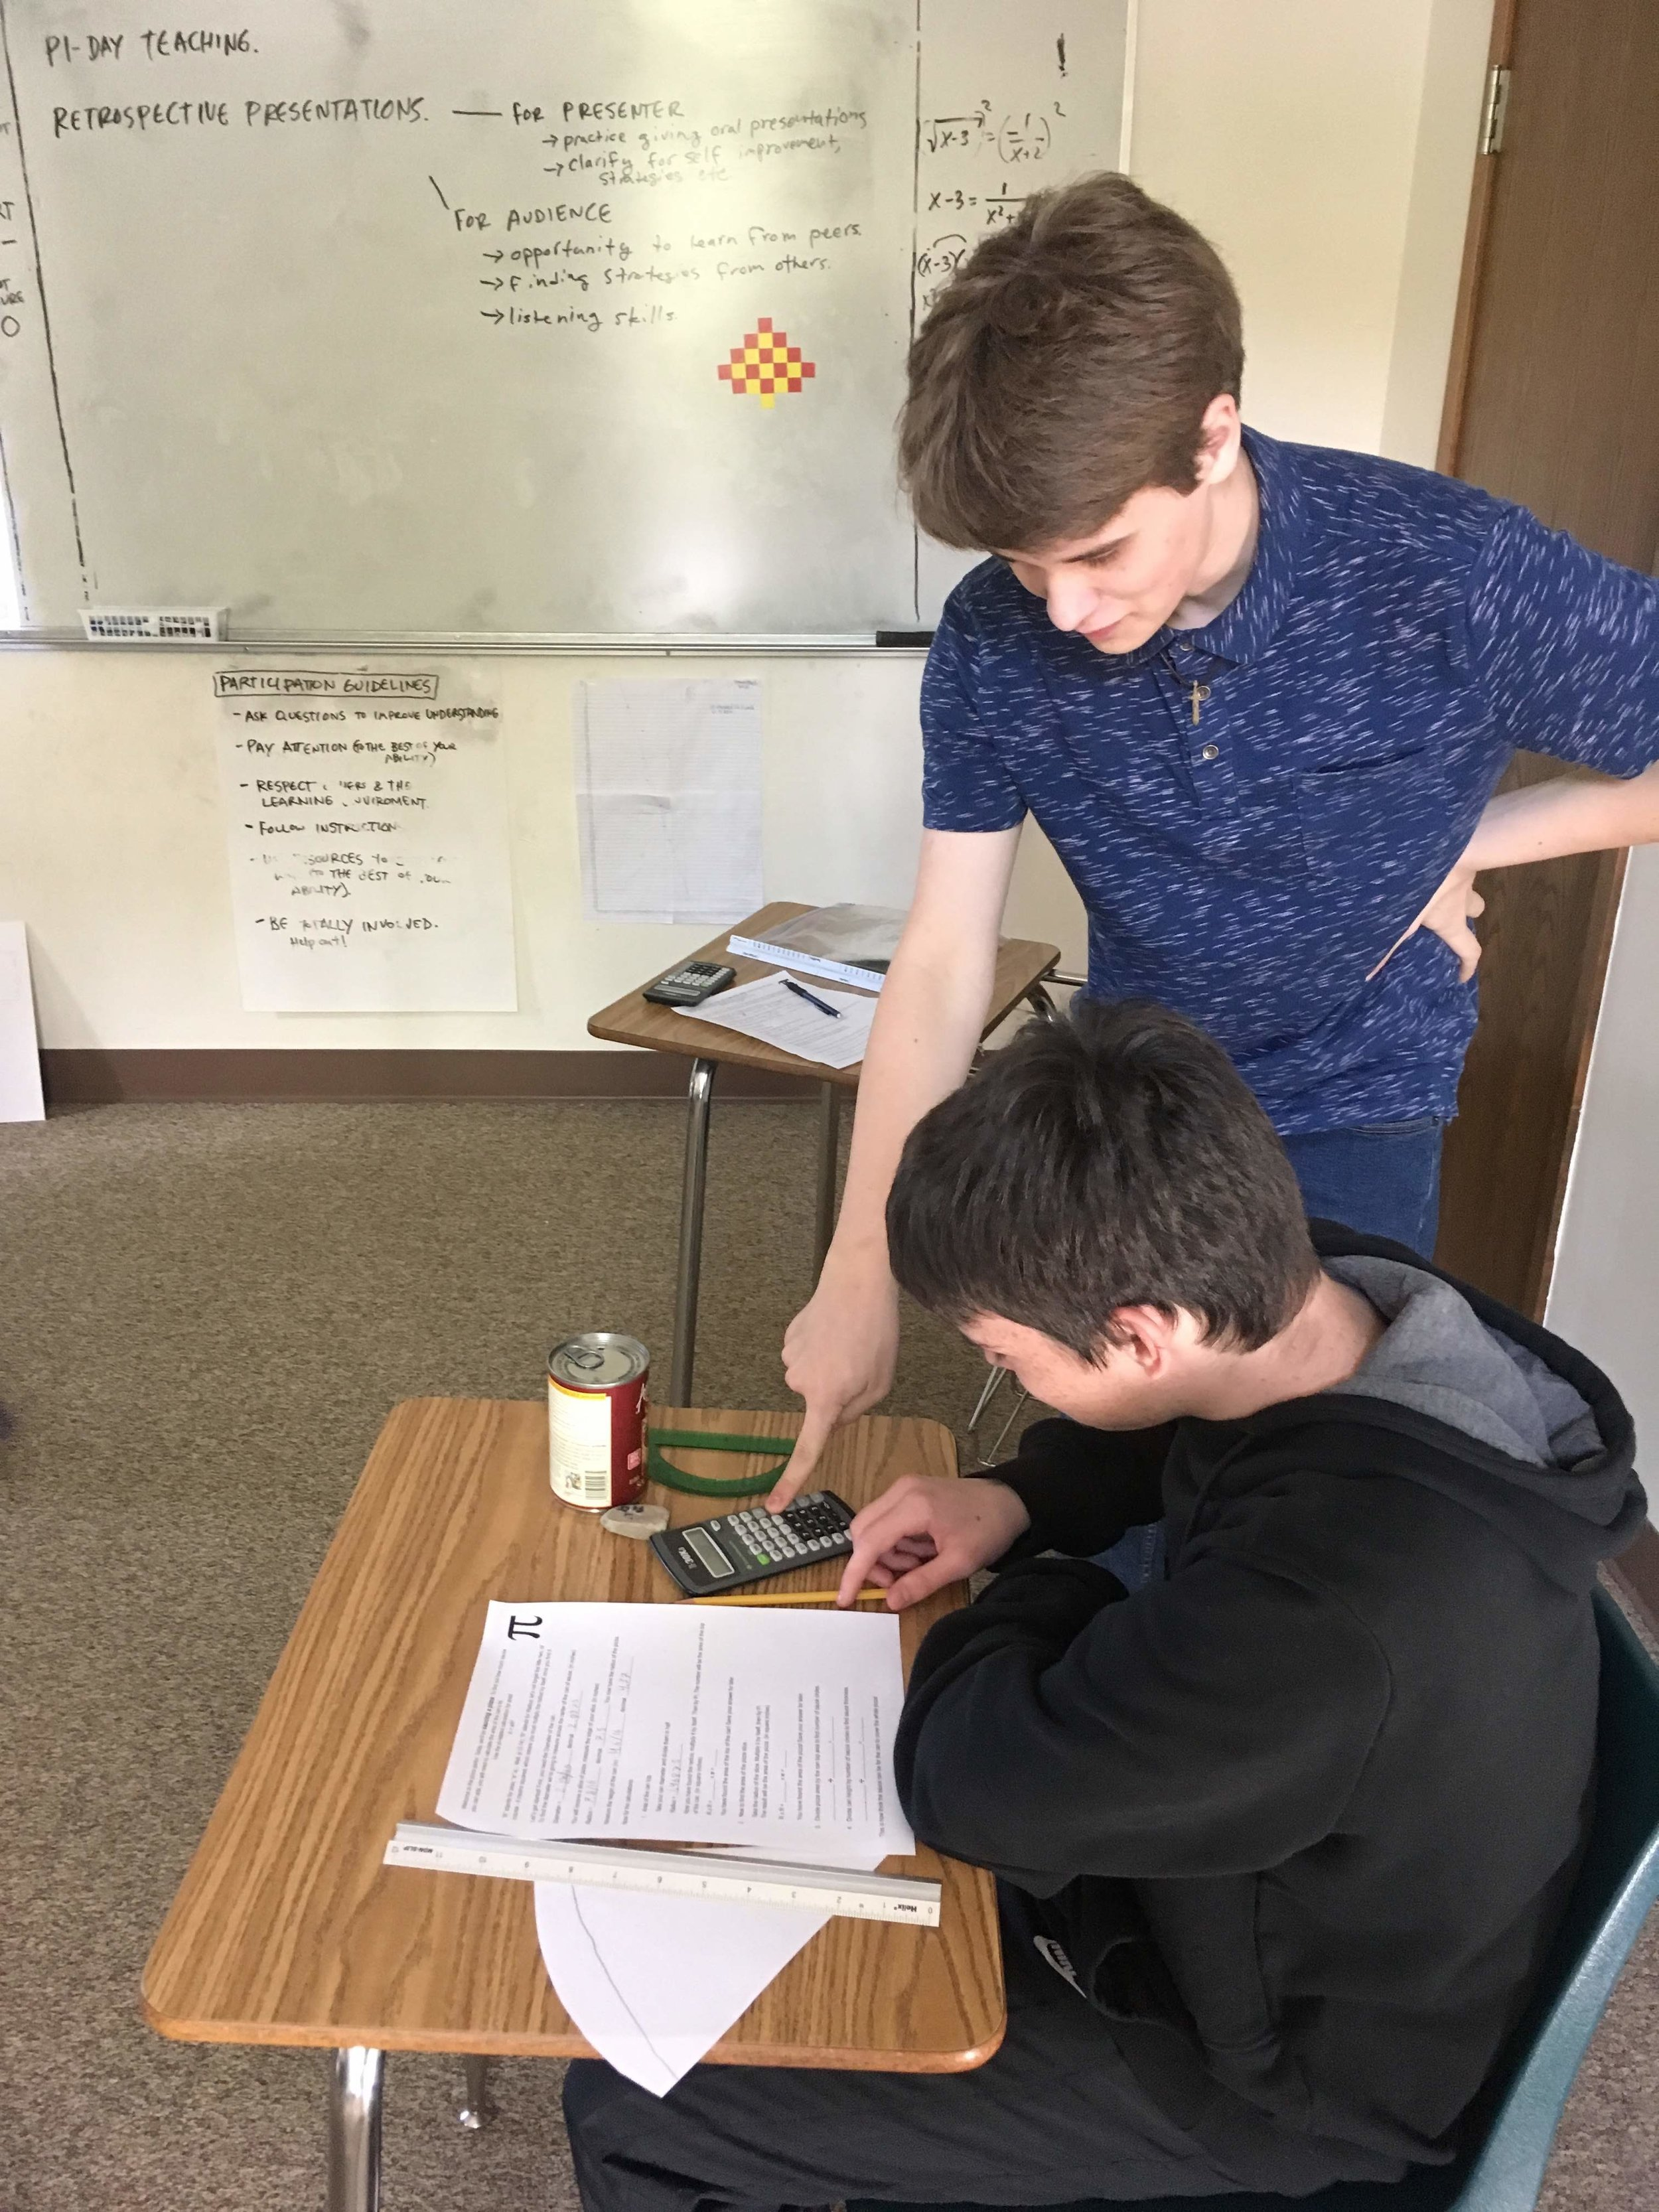 One student providing educational support to another